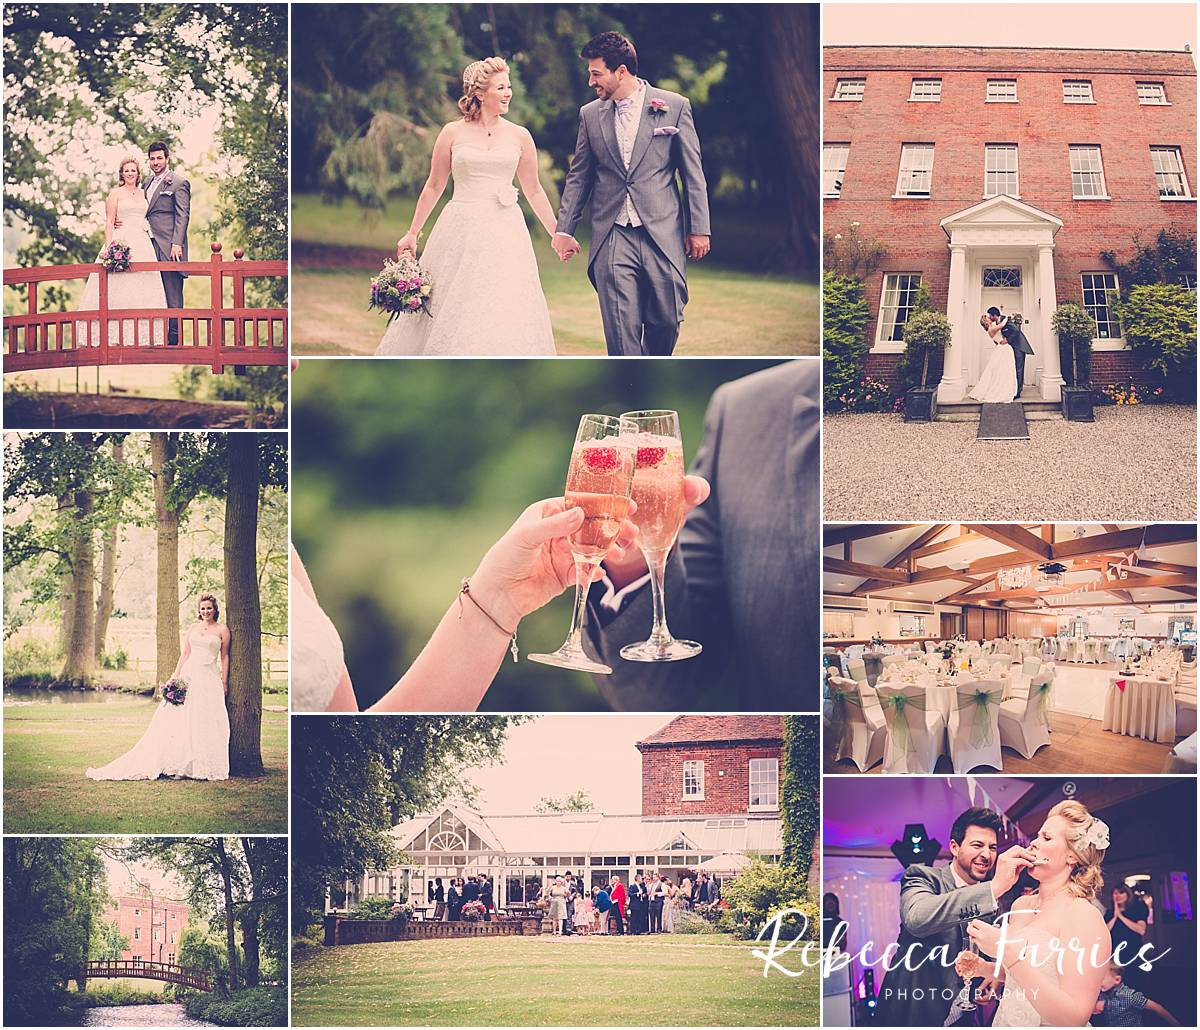 Wedding photography collage mulberry house